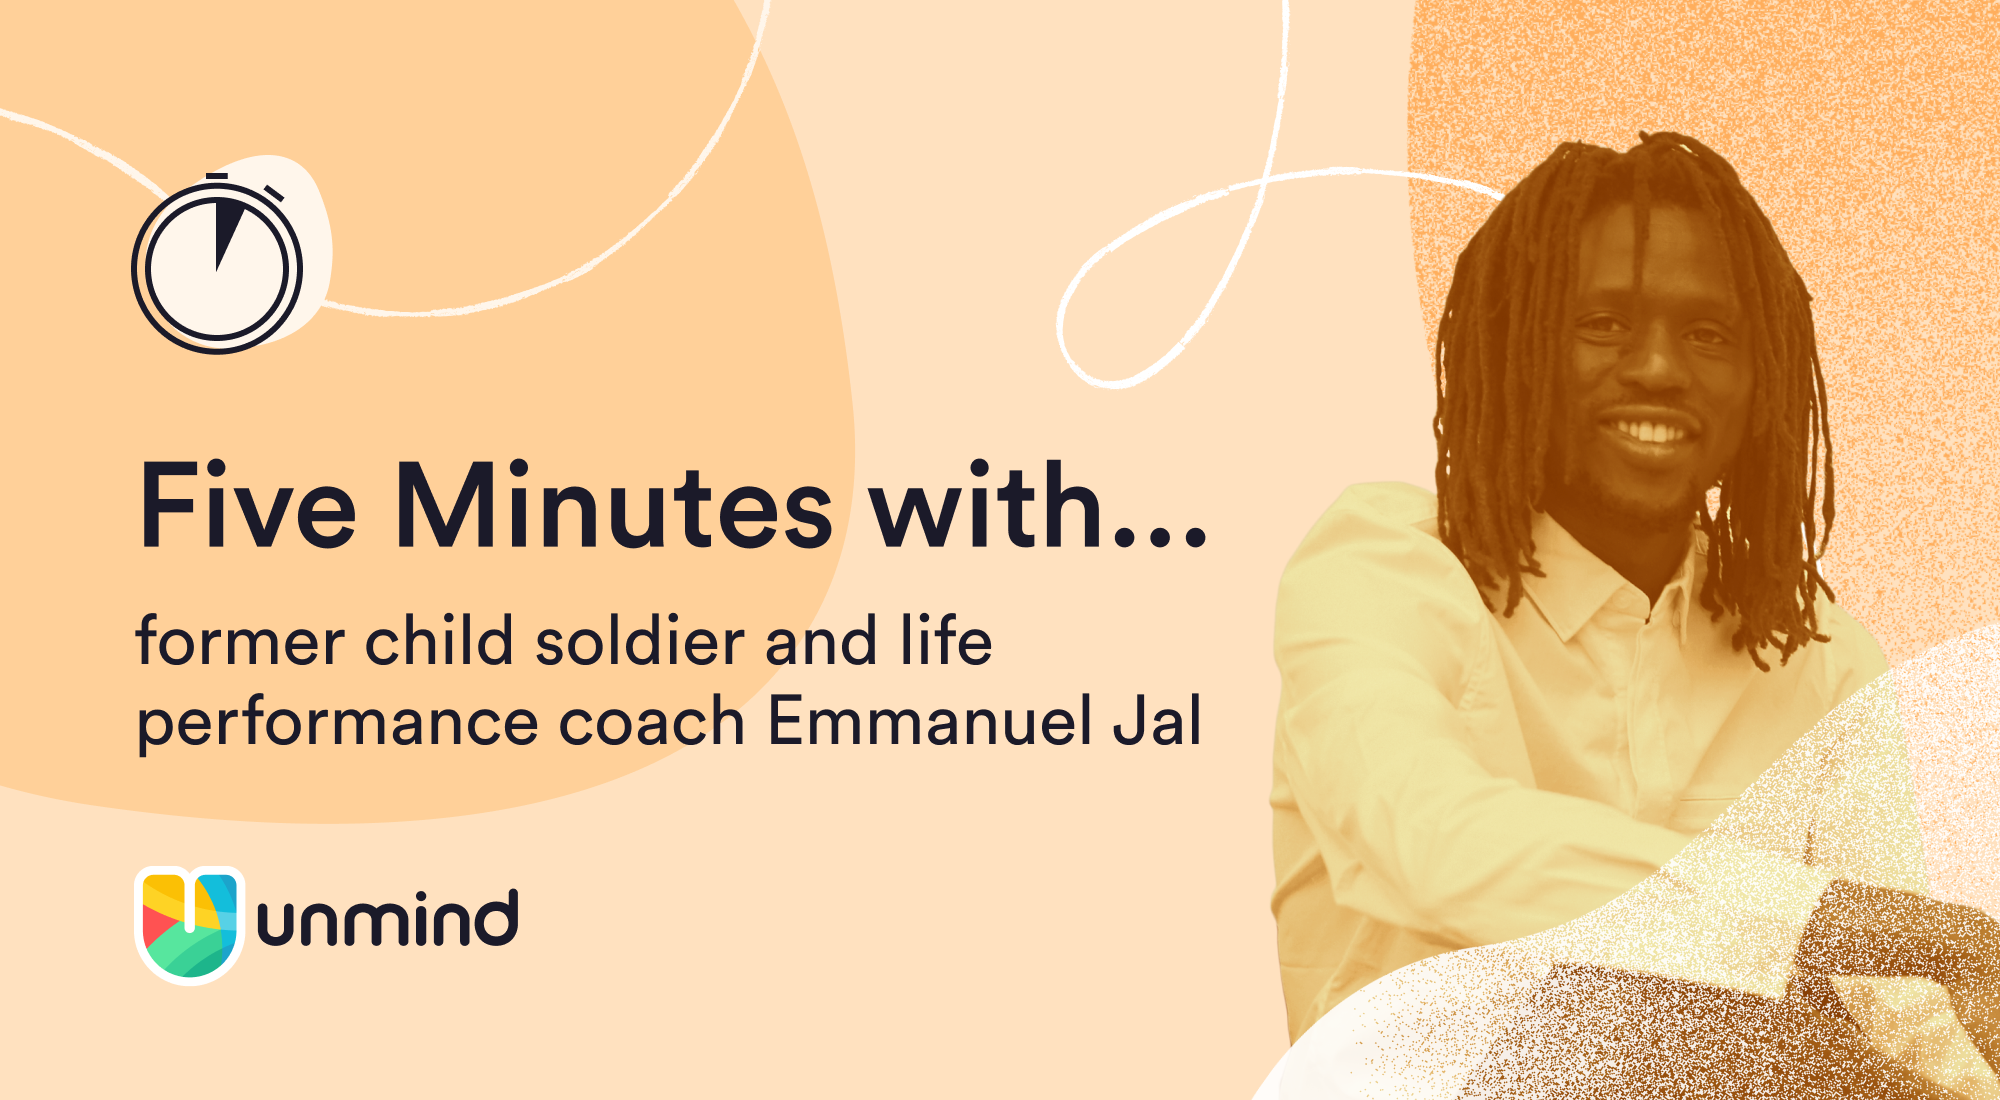 5 minutes with life performance coach Emmanuel Jal